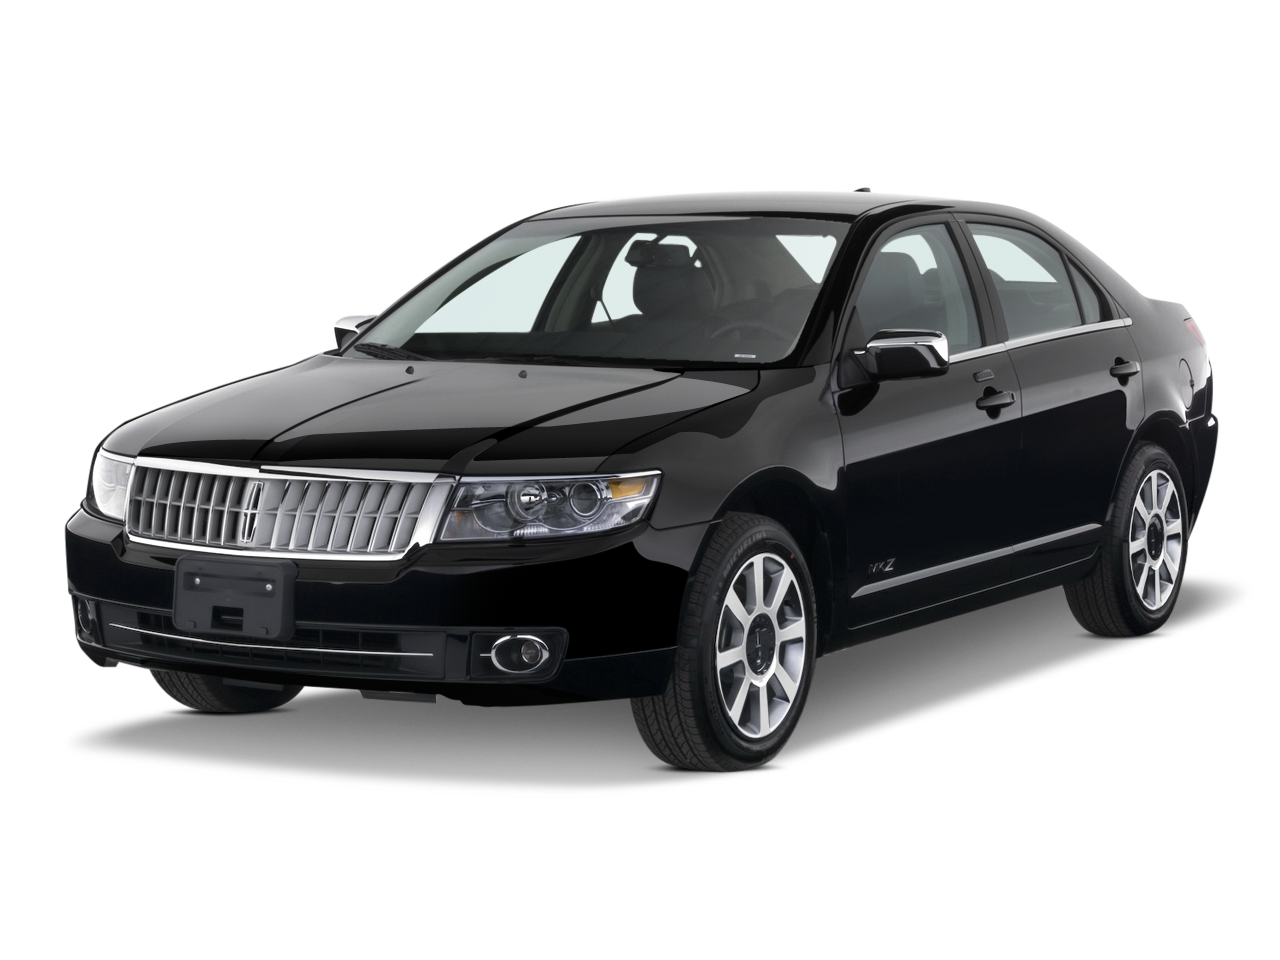 2008 Lincoln Mkz Lincoln Luxury Sedan Review